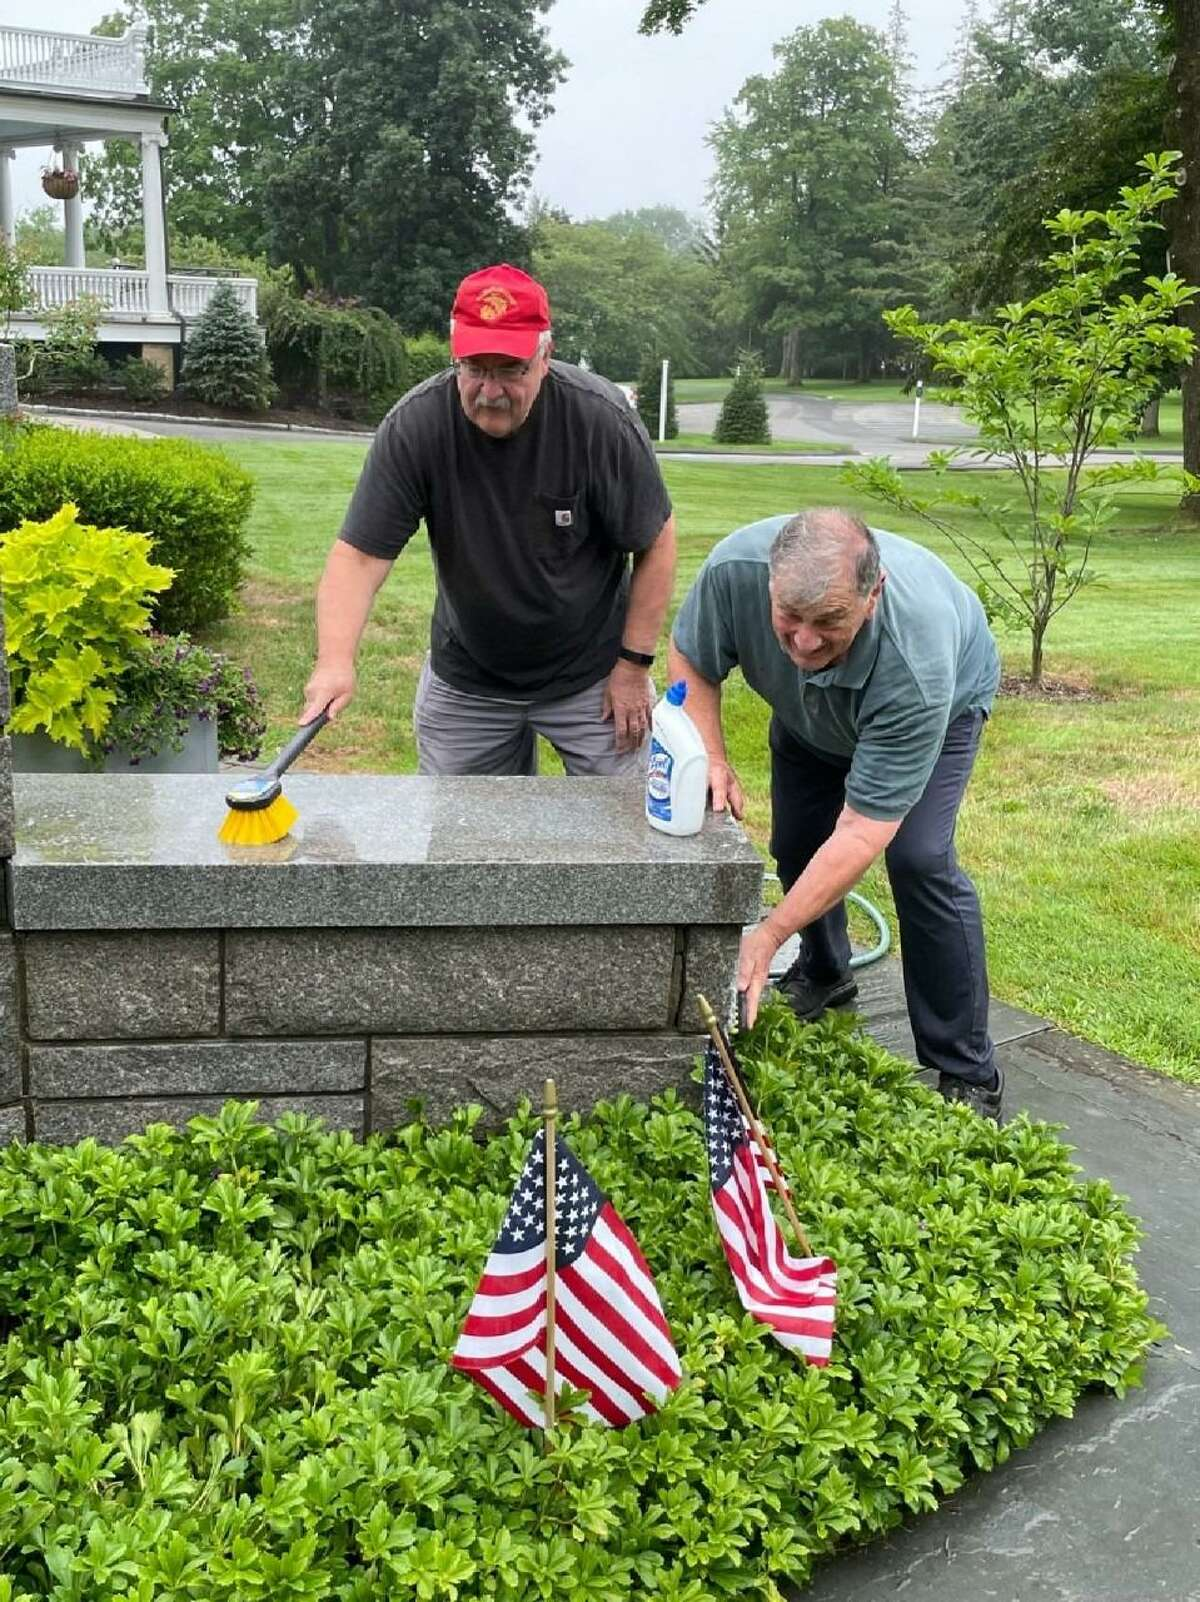 Marine Corps veterans Pete Killie, left, and Dick Tiani, scrub down the Veterans Memorial Monument at Lounsbury House in Ridgefield. The historic mansion has supported veterans since it opened to visitors in 1954.